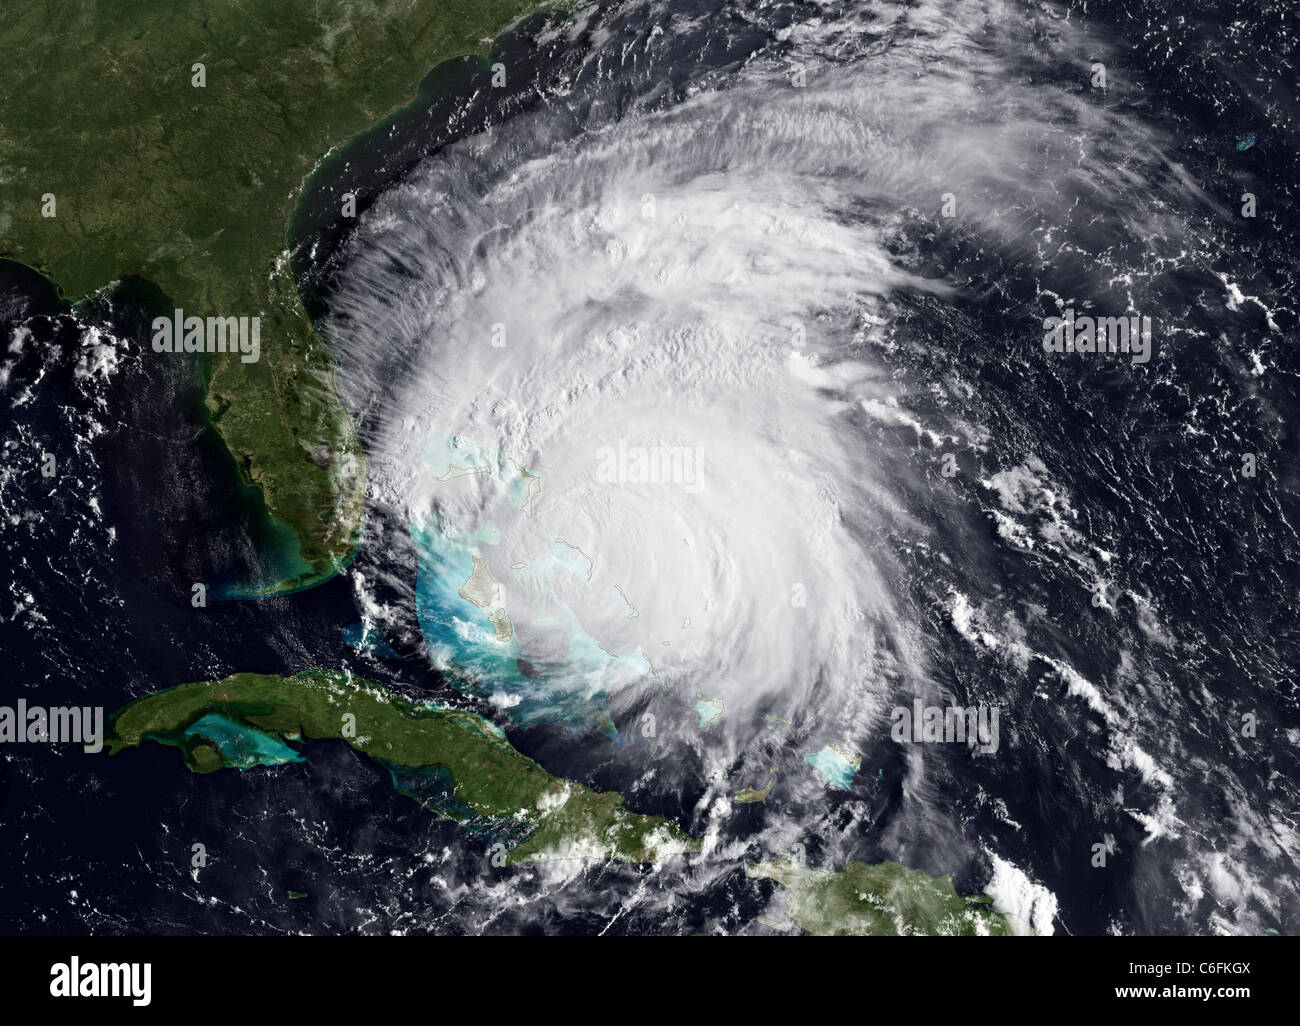 Hurricane Irene Update - August 25, 2011 Irene is still packing a punch with 115 mph winds. Although the eye has Stock Photo